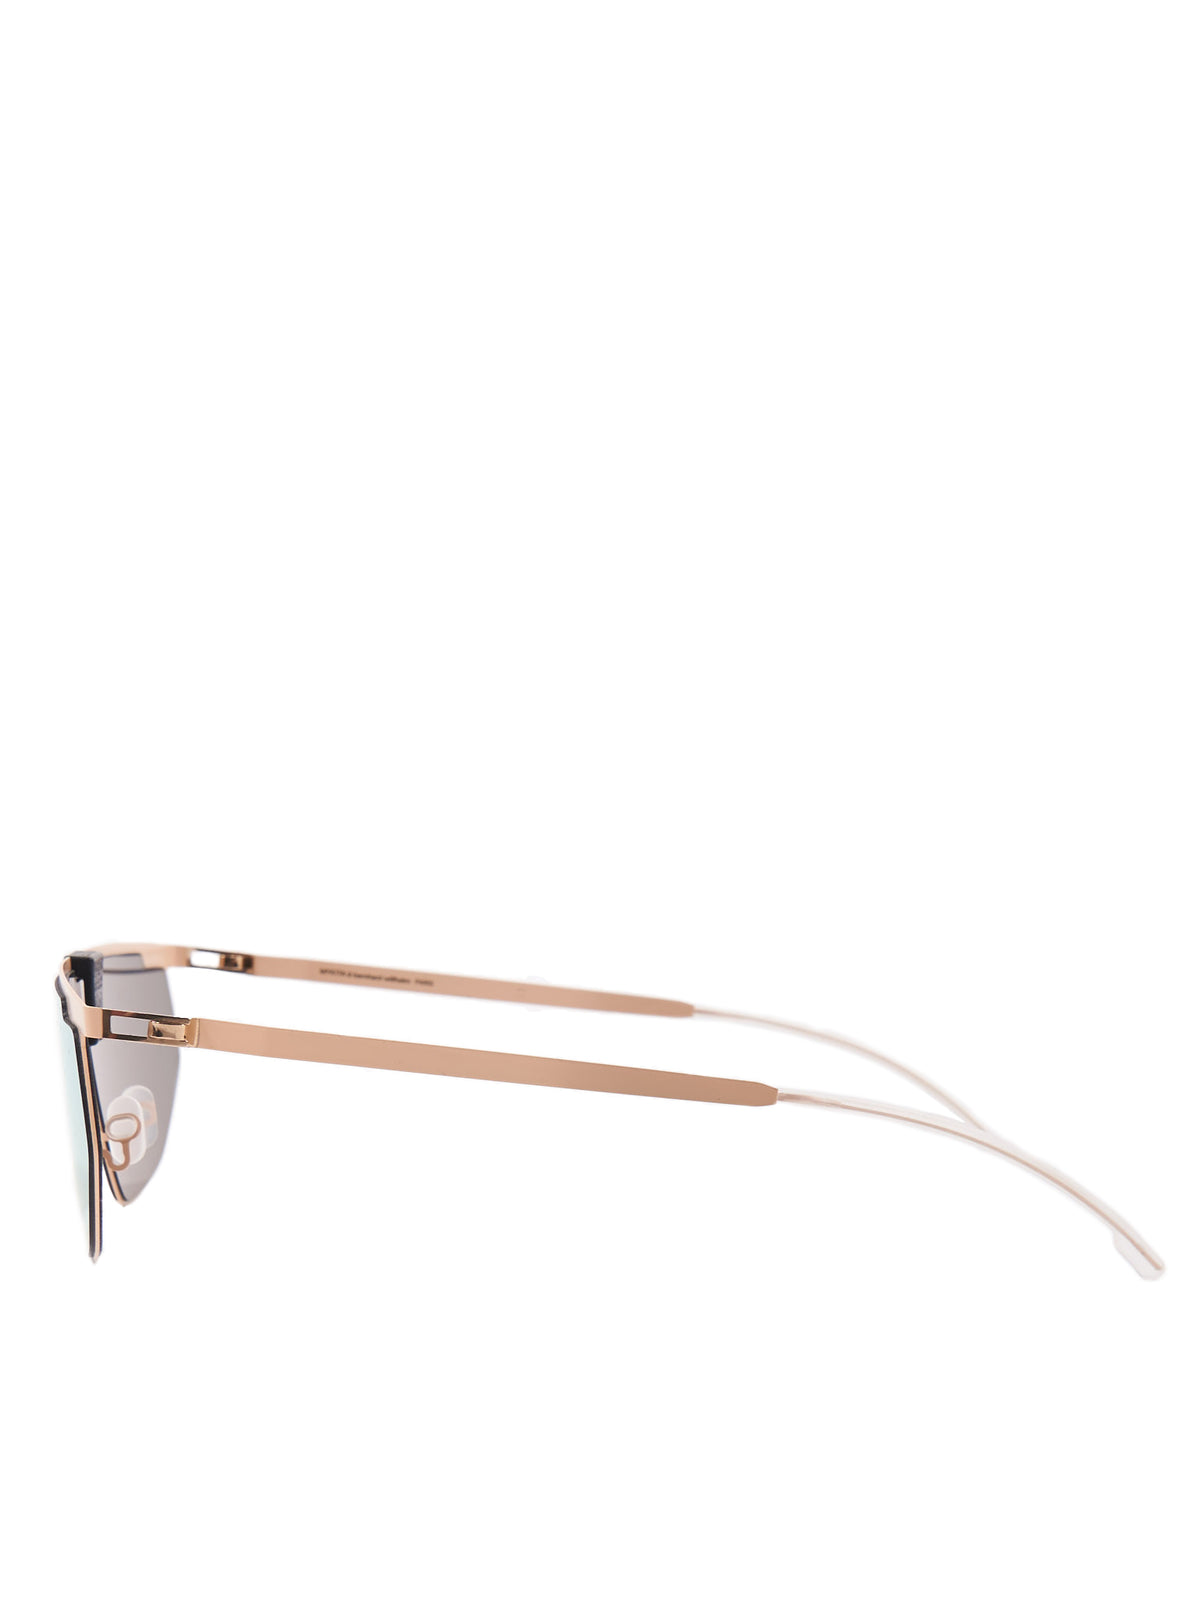 Shield Sunglasses (PARIS-MH47-SAFRANEL-CHAMPAGNE)